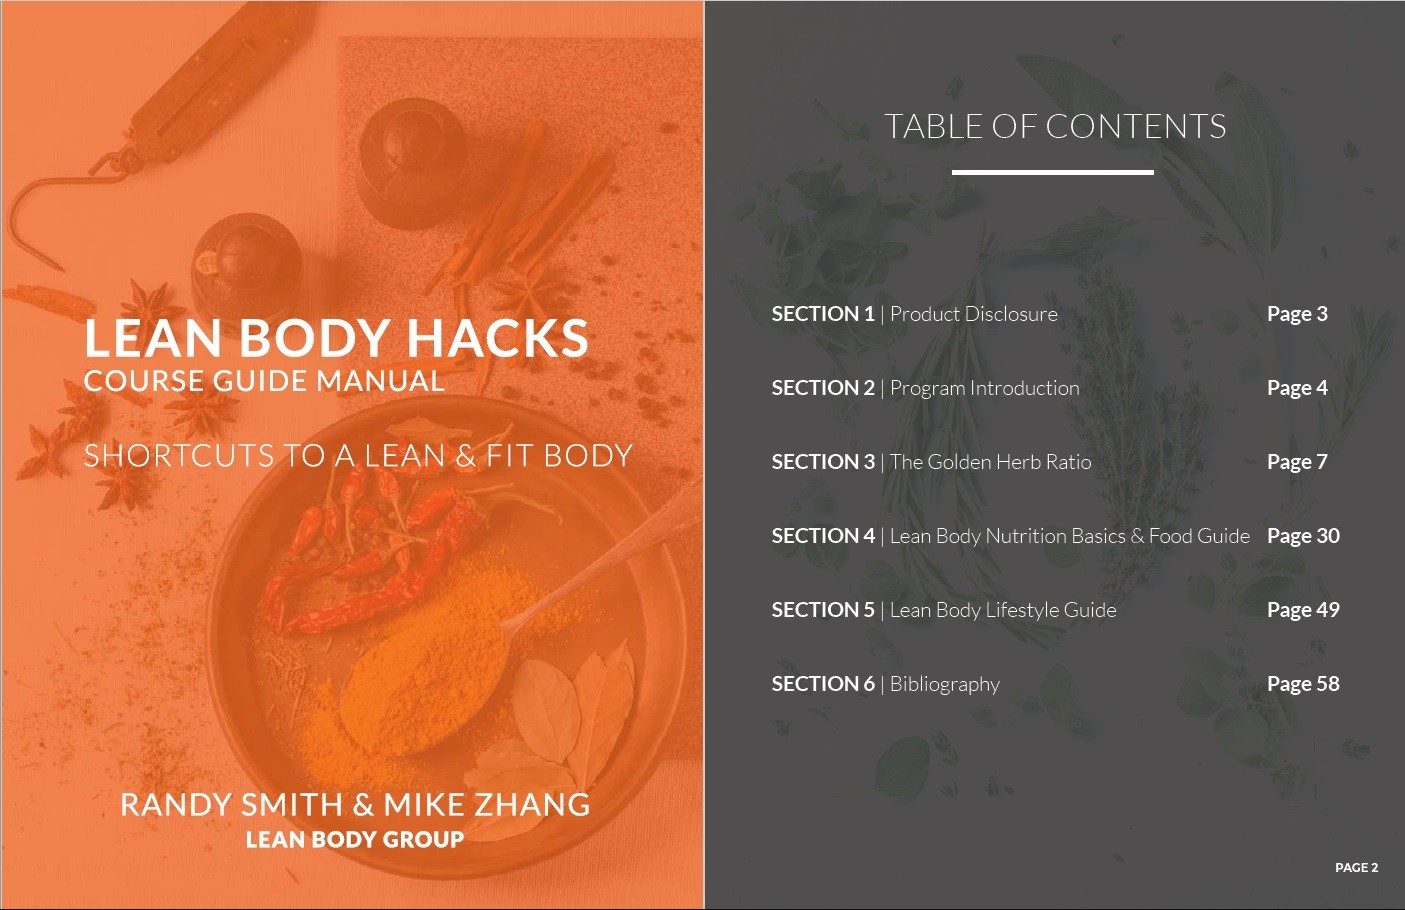 Lean Body Hacks Table of Contents